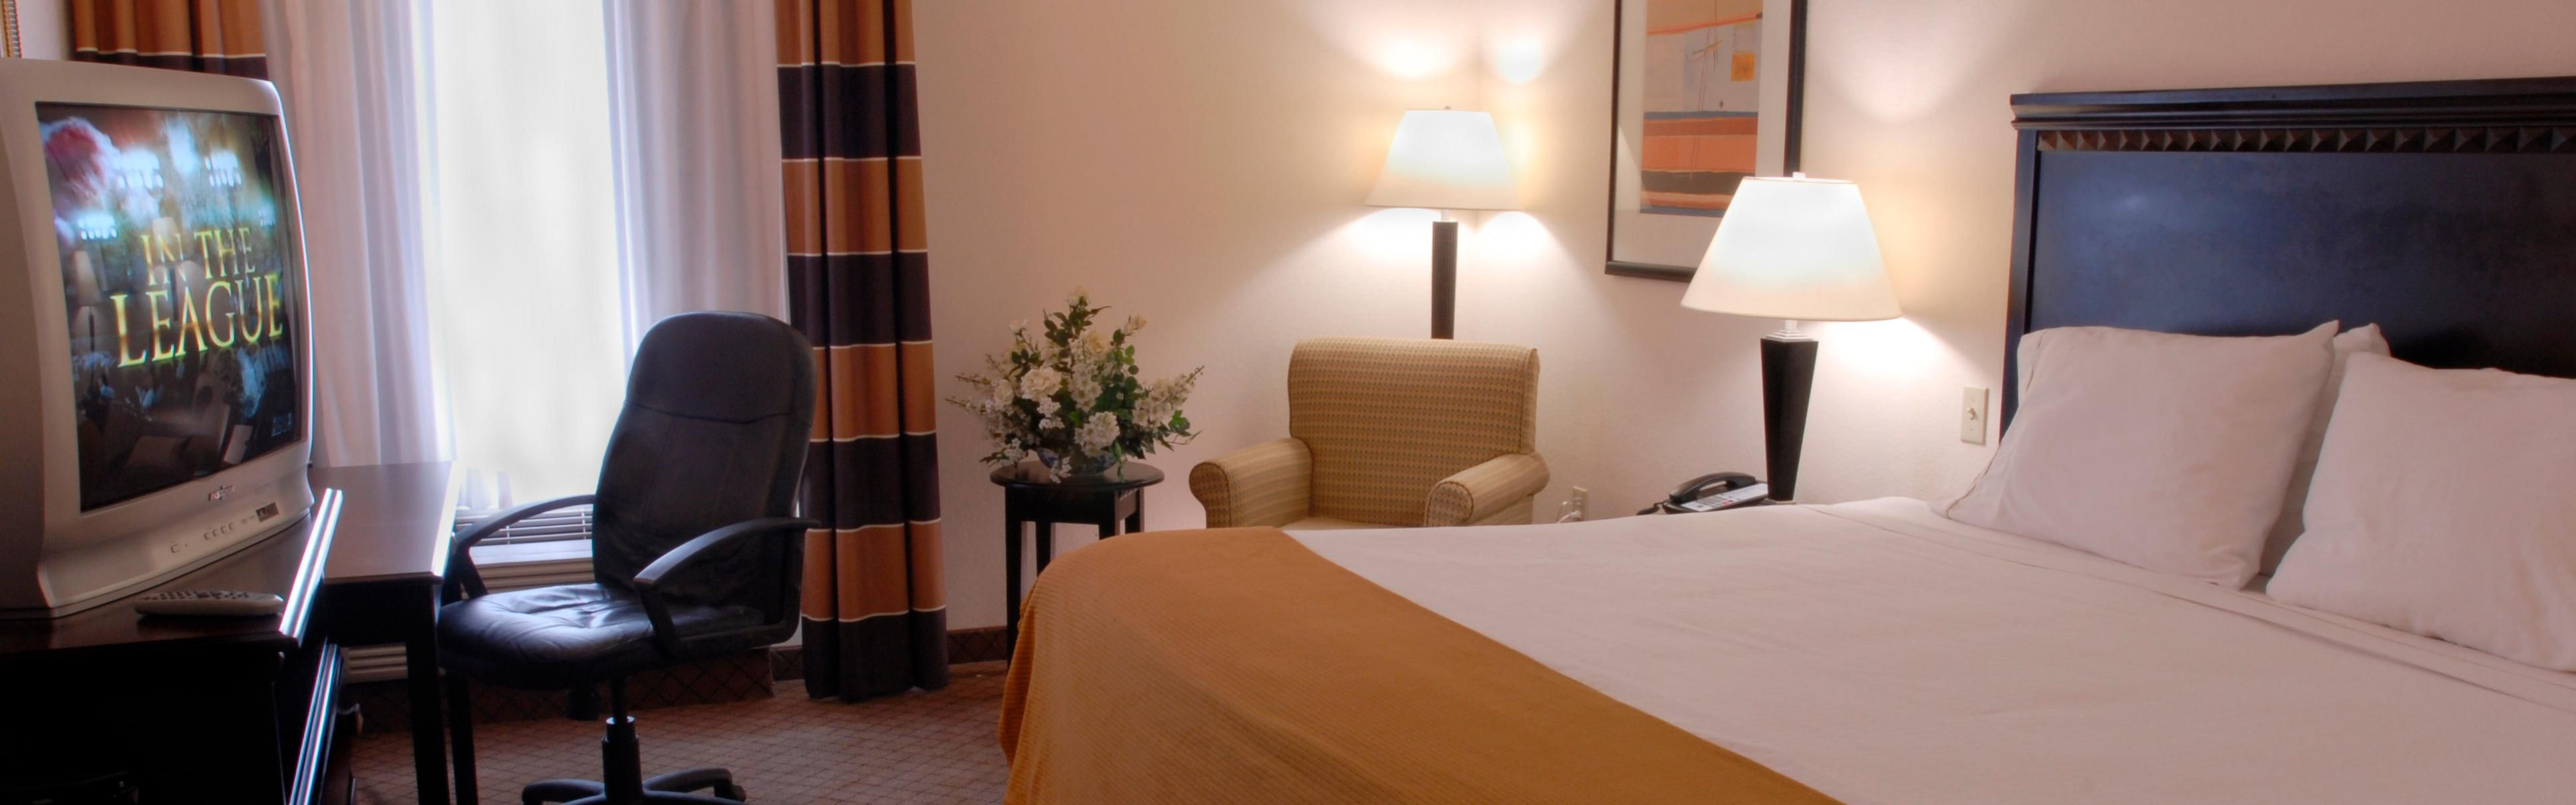 Holiday Inn Express Venice image 1